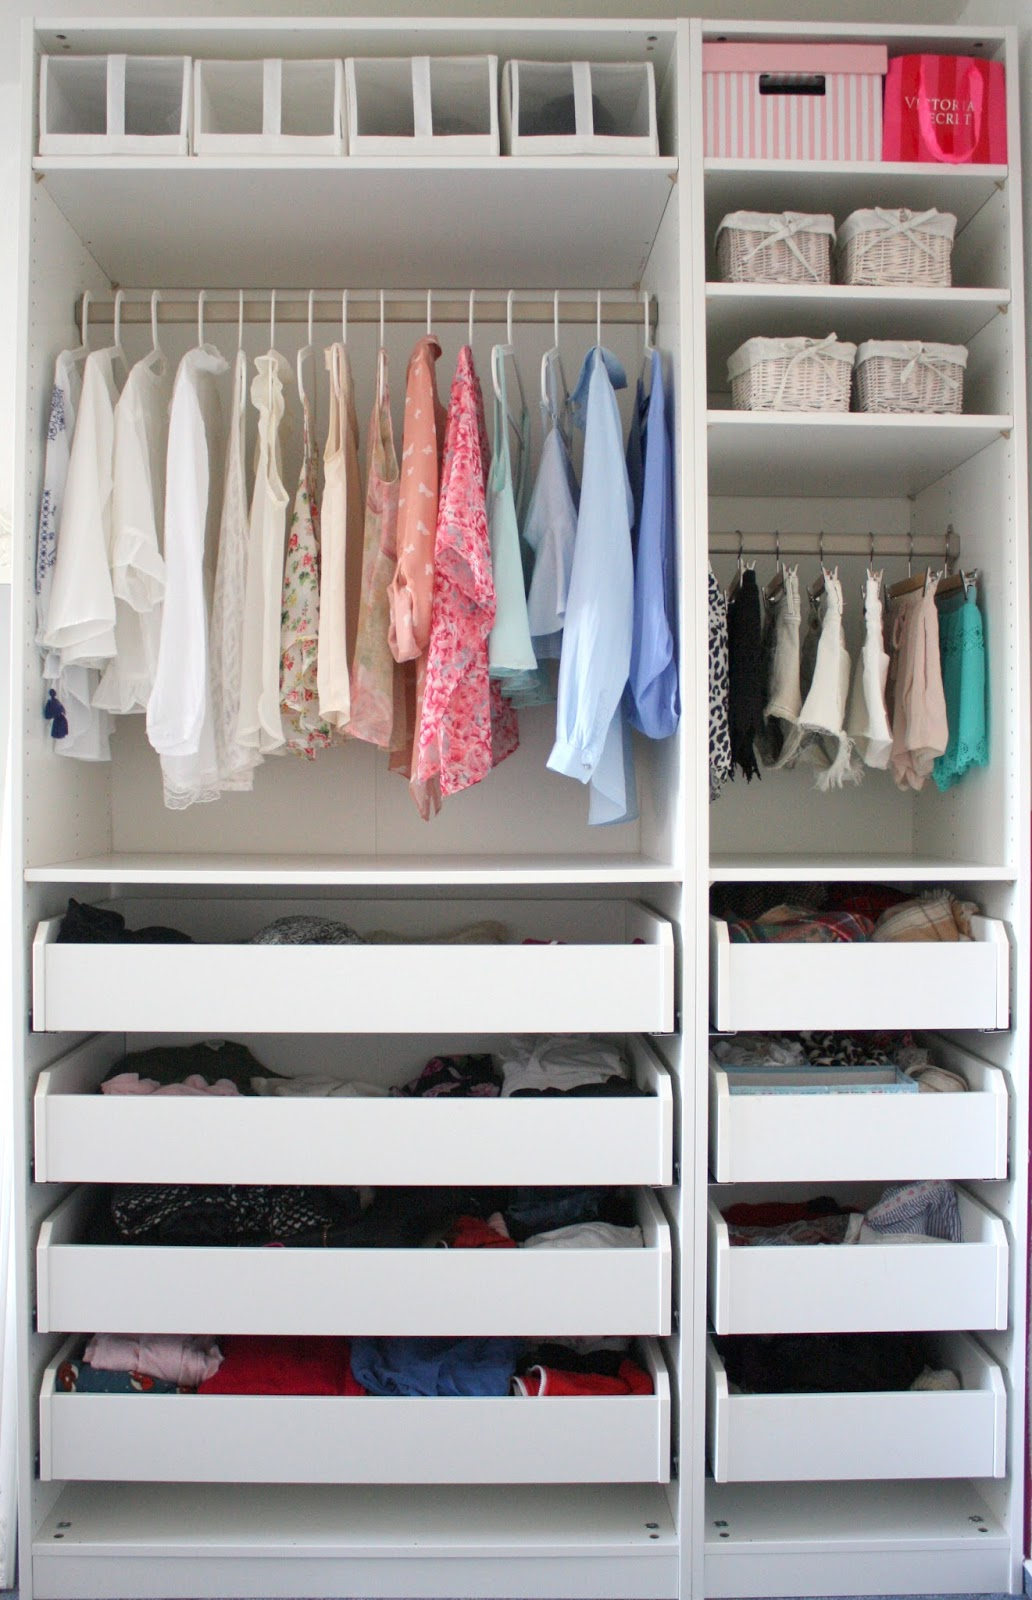 Schrank Zusammenstellen Featherwings: My Closet - Impressions, Organisation